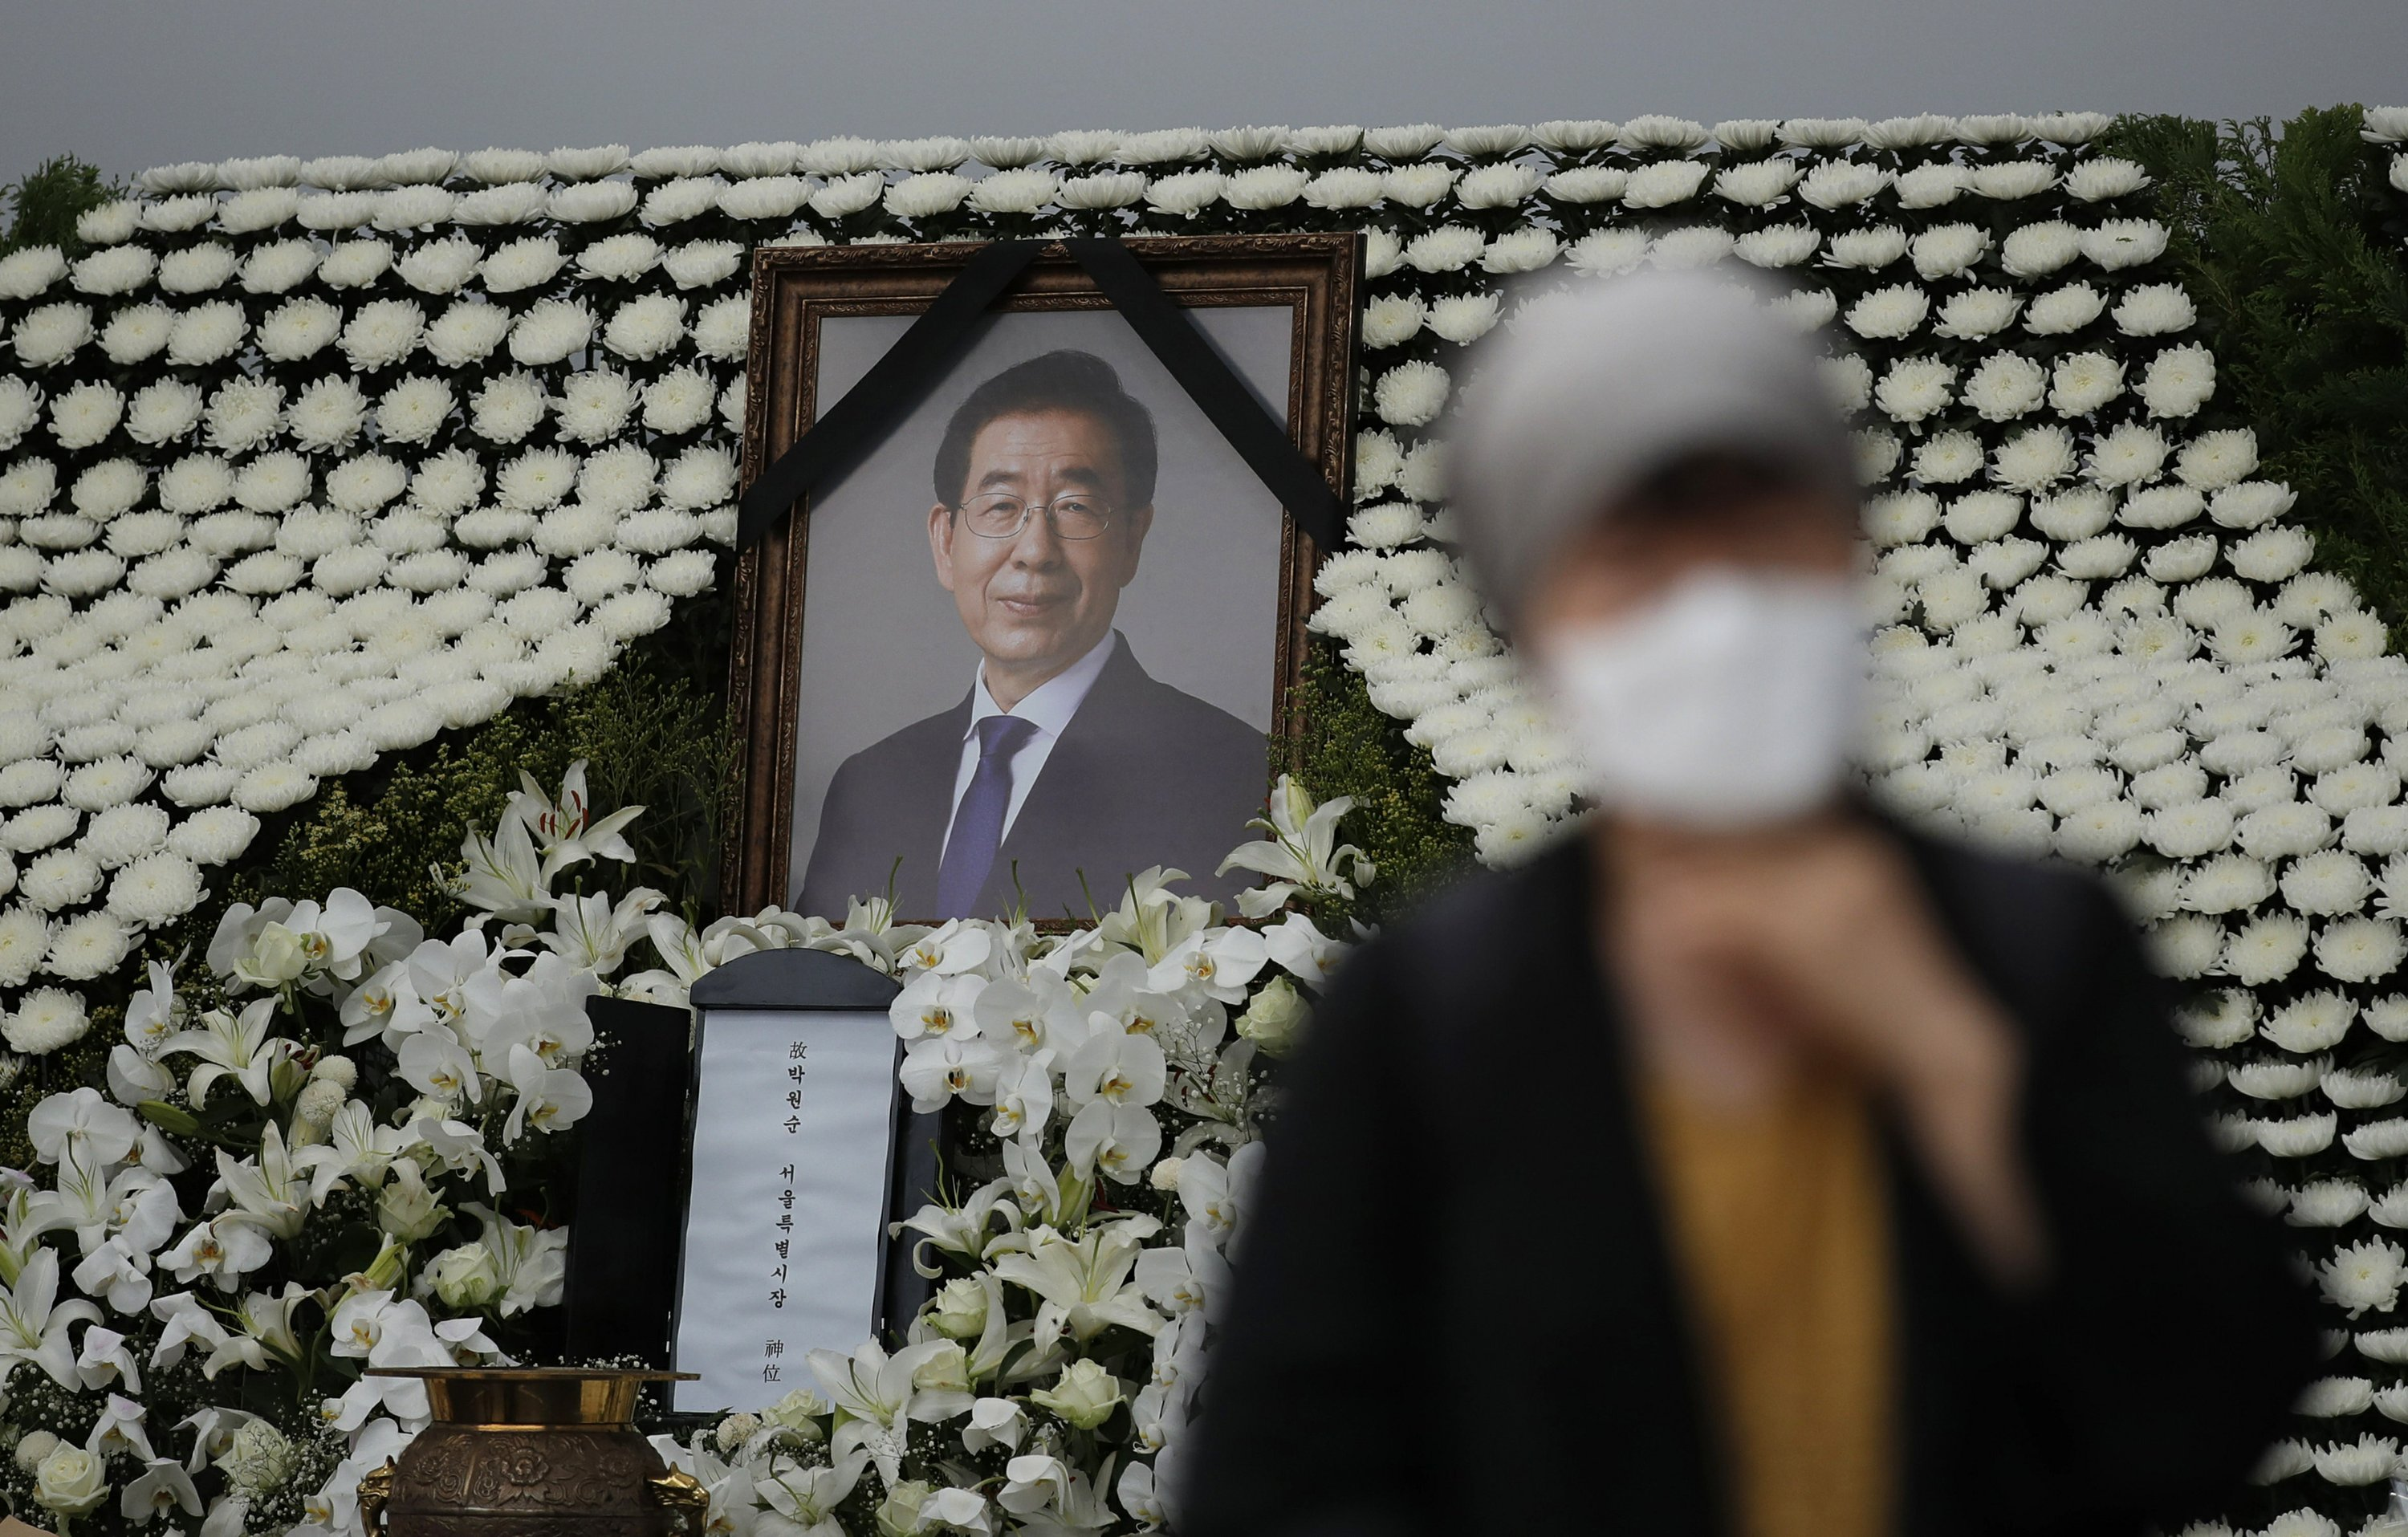 Seoul mayor's funeral draws both condolences and insults